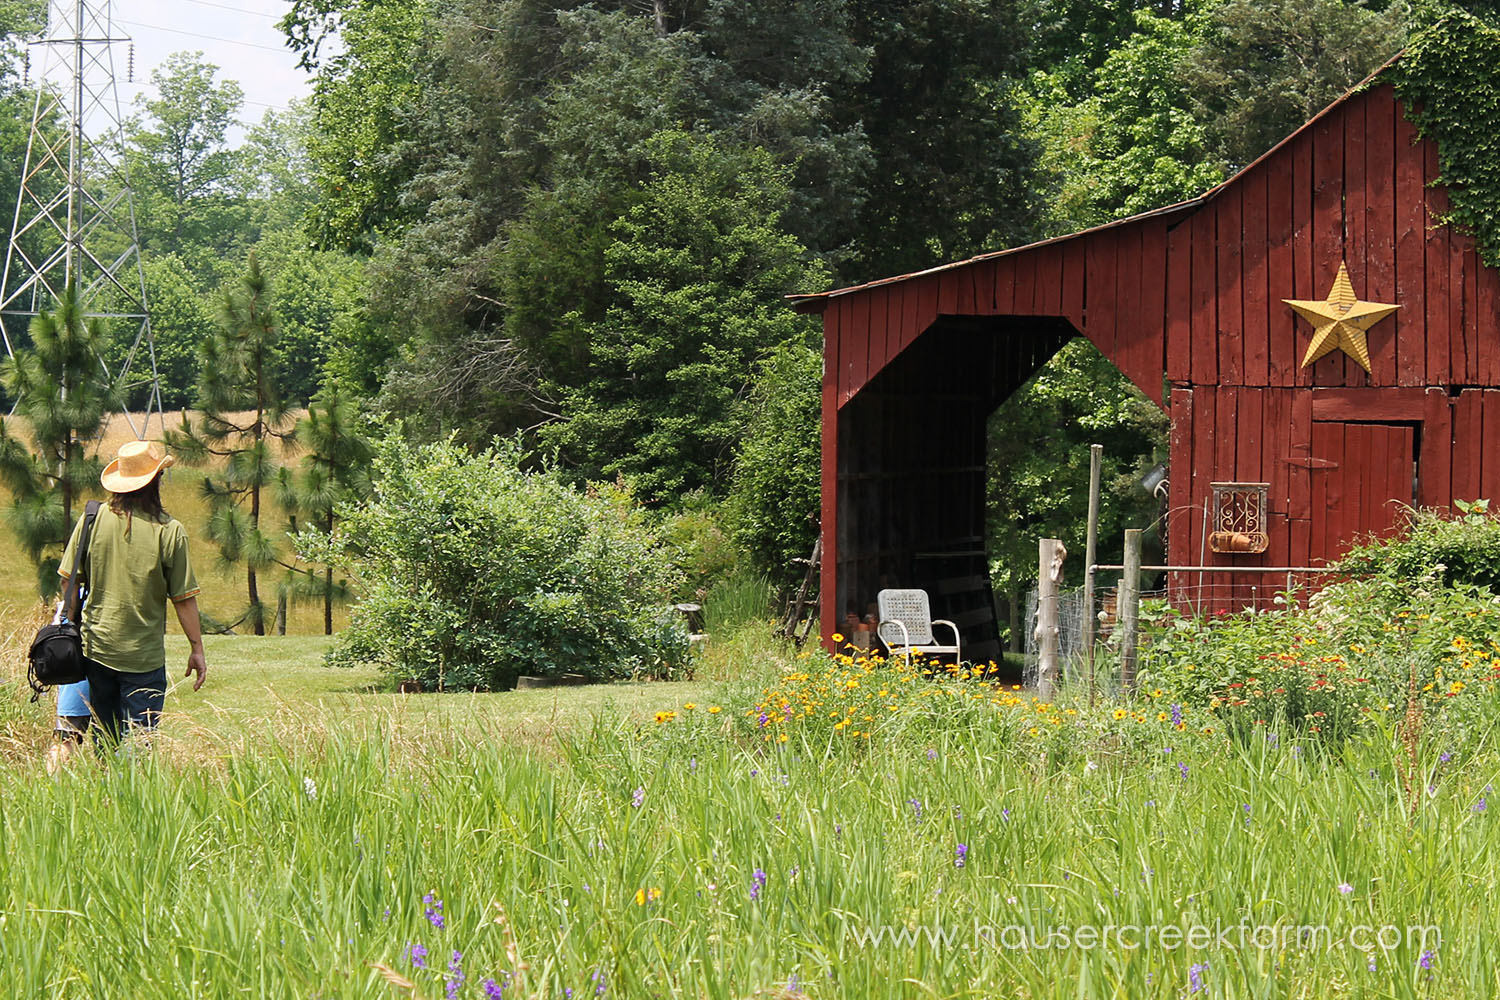 hauser-creek-farm-spring-open-farm-day-melody-watson-photo-1528.jpg